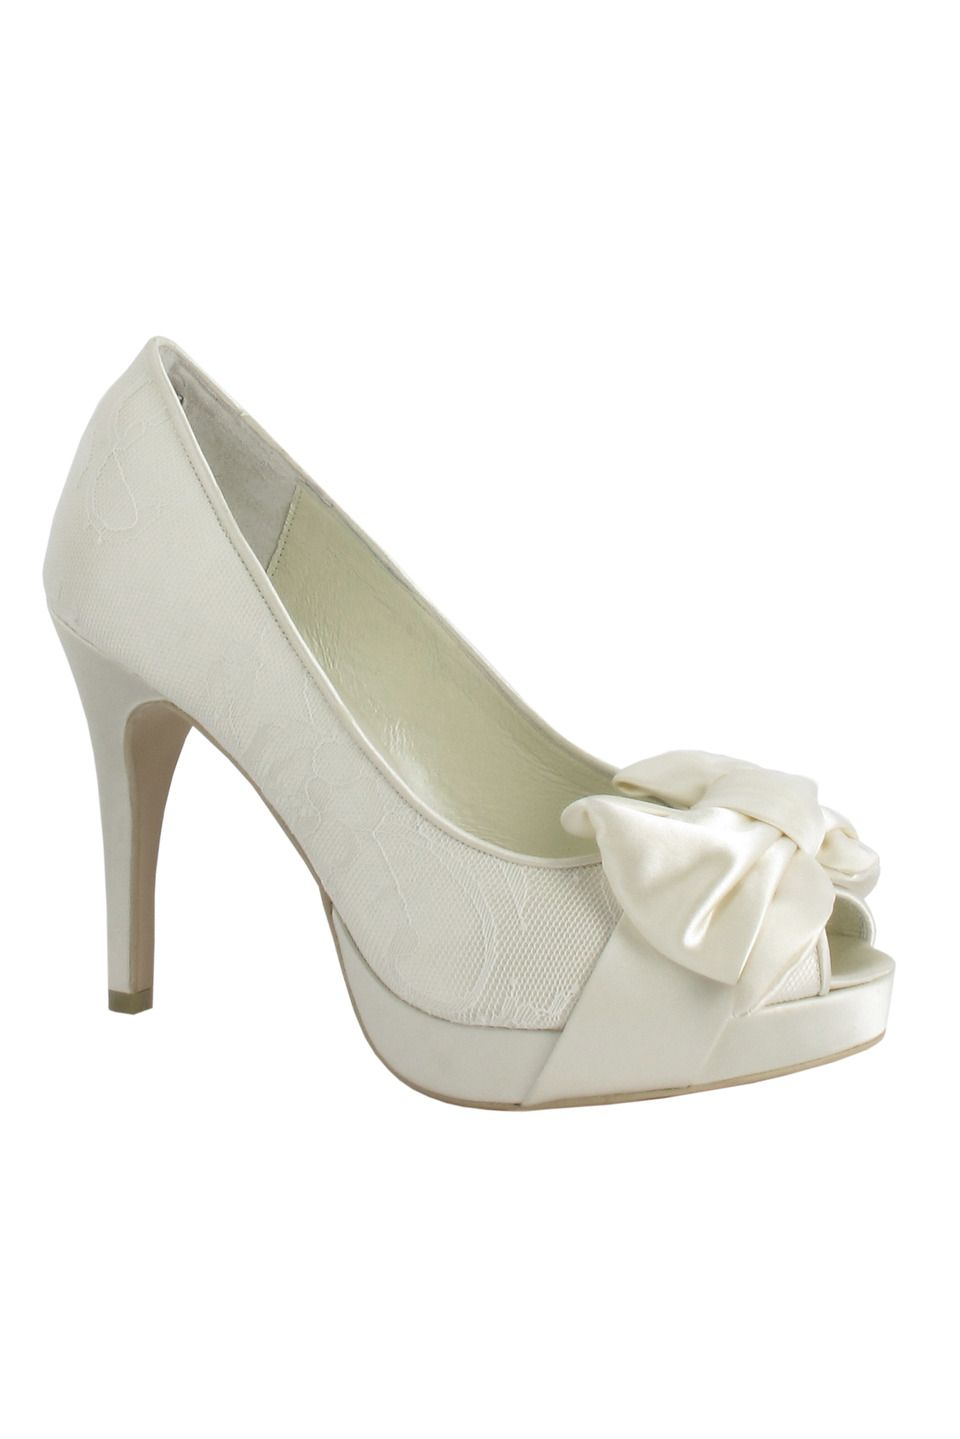 6649a6576cec Menbur - Lace Bridal Pumps with Bow in Ivory